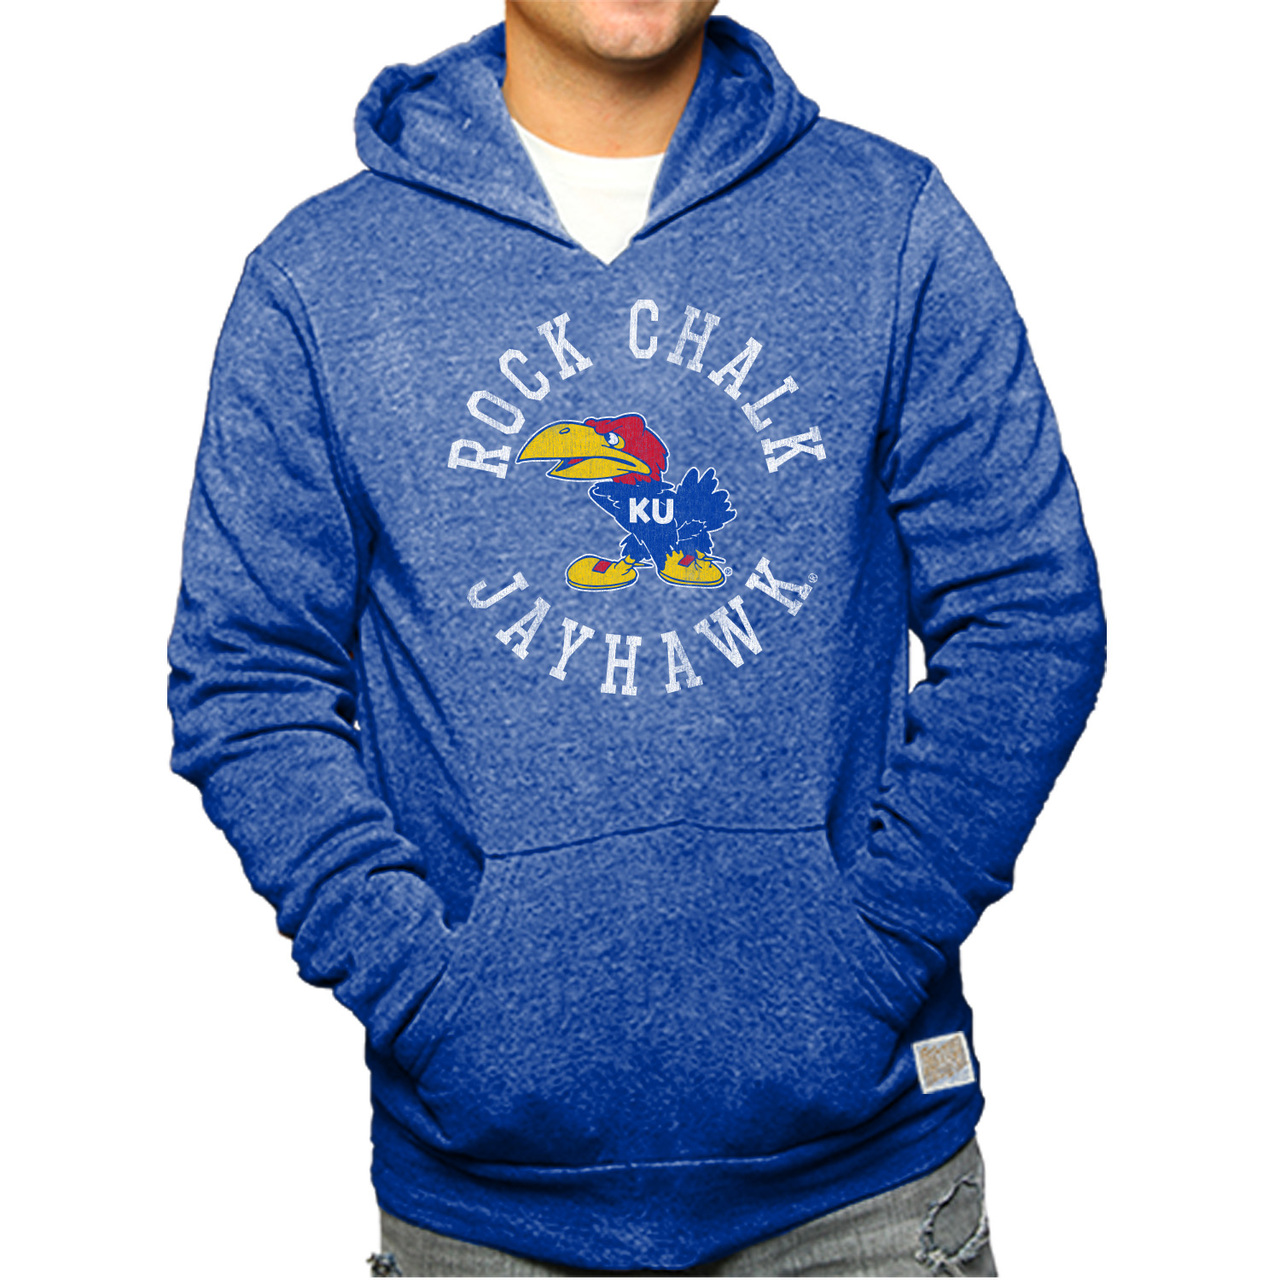 b616172a9 Kansas Jayhawks Youth Vintage Logo Hooded Sweatshirt - Royal - Walmart.com